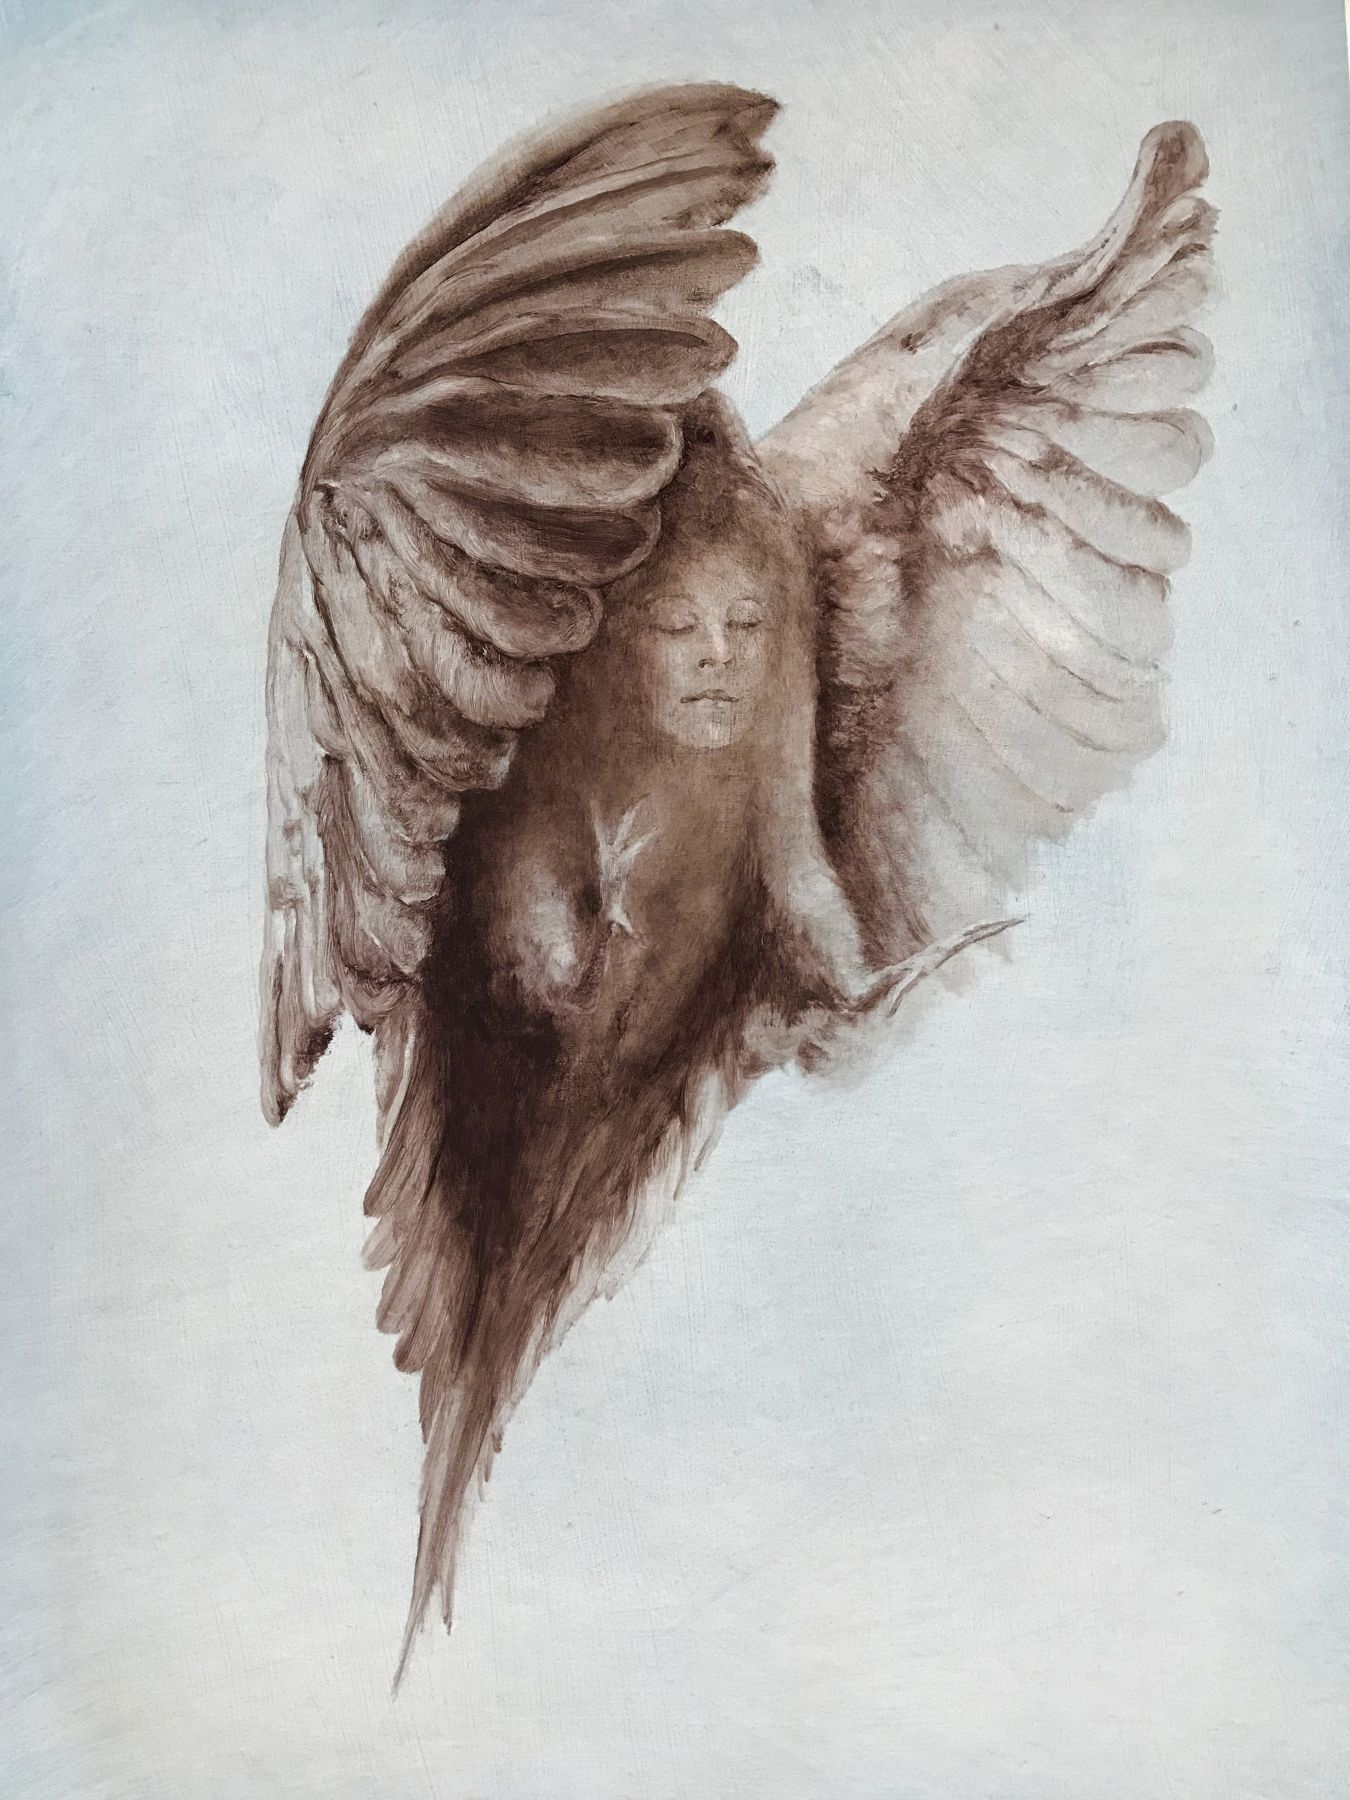 Kate Javens, Alyssa as a Mourning Dove, 2018, oil on birch panel, 24 x 18 inches